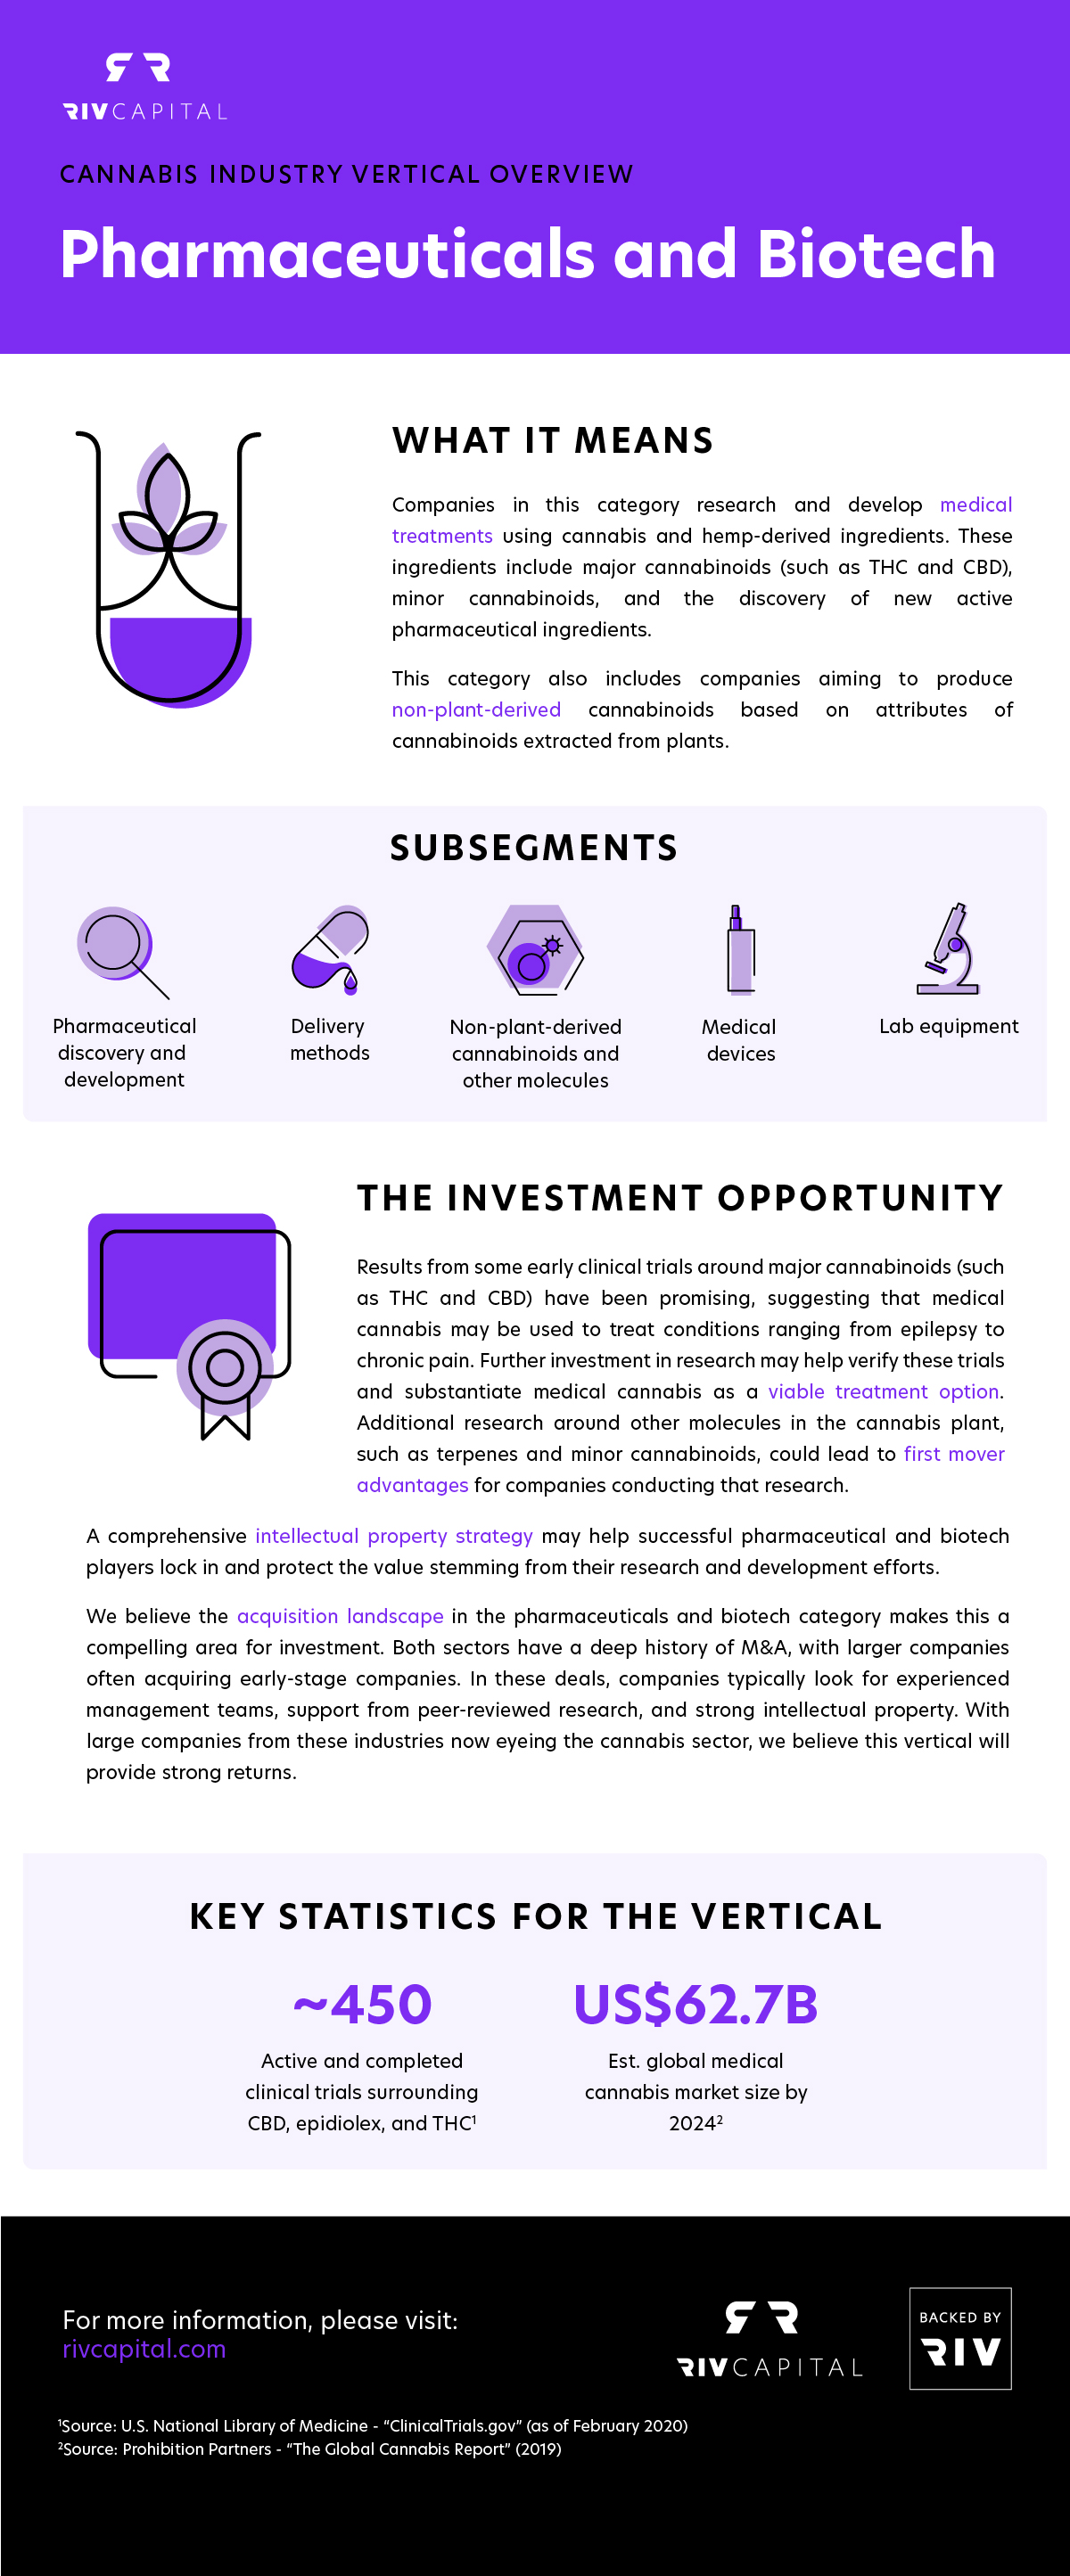 Canopy Rivers Pharmaceuticals and Biotech infographic